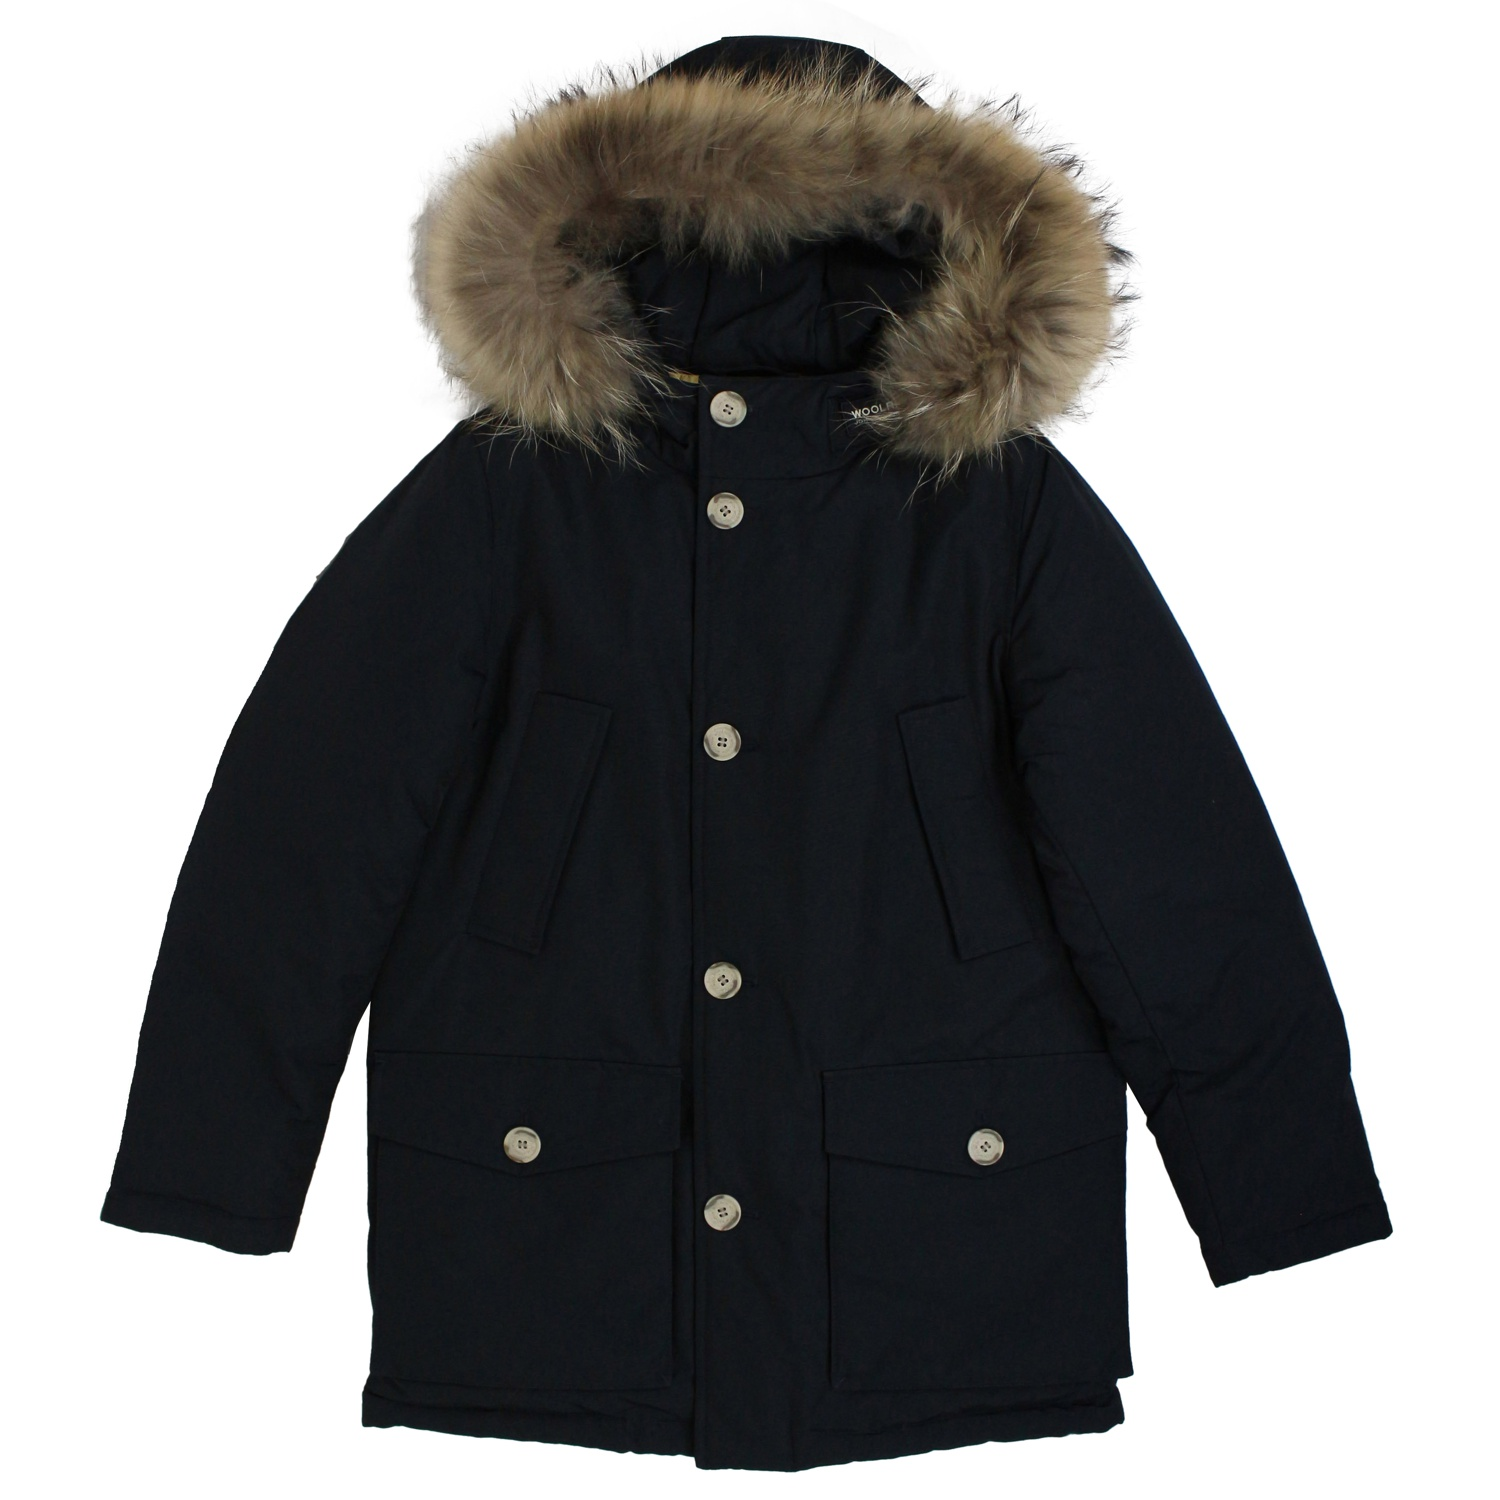 premium selection f5e38 14049 B'S Parka Detachable Fur